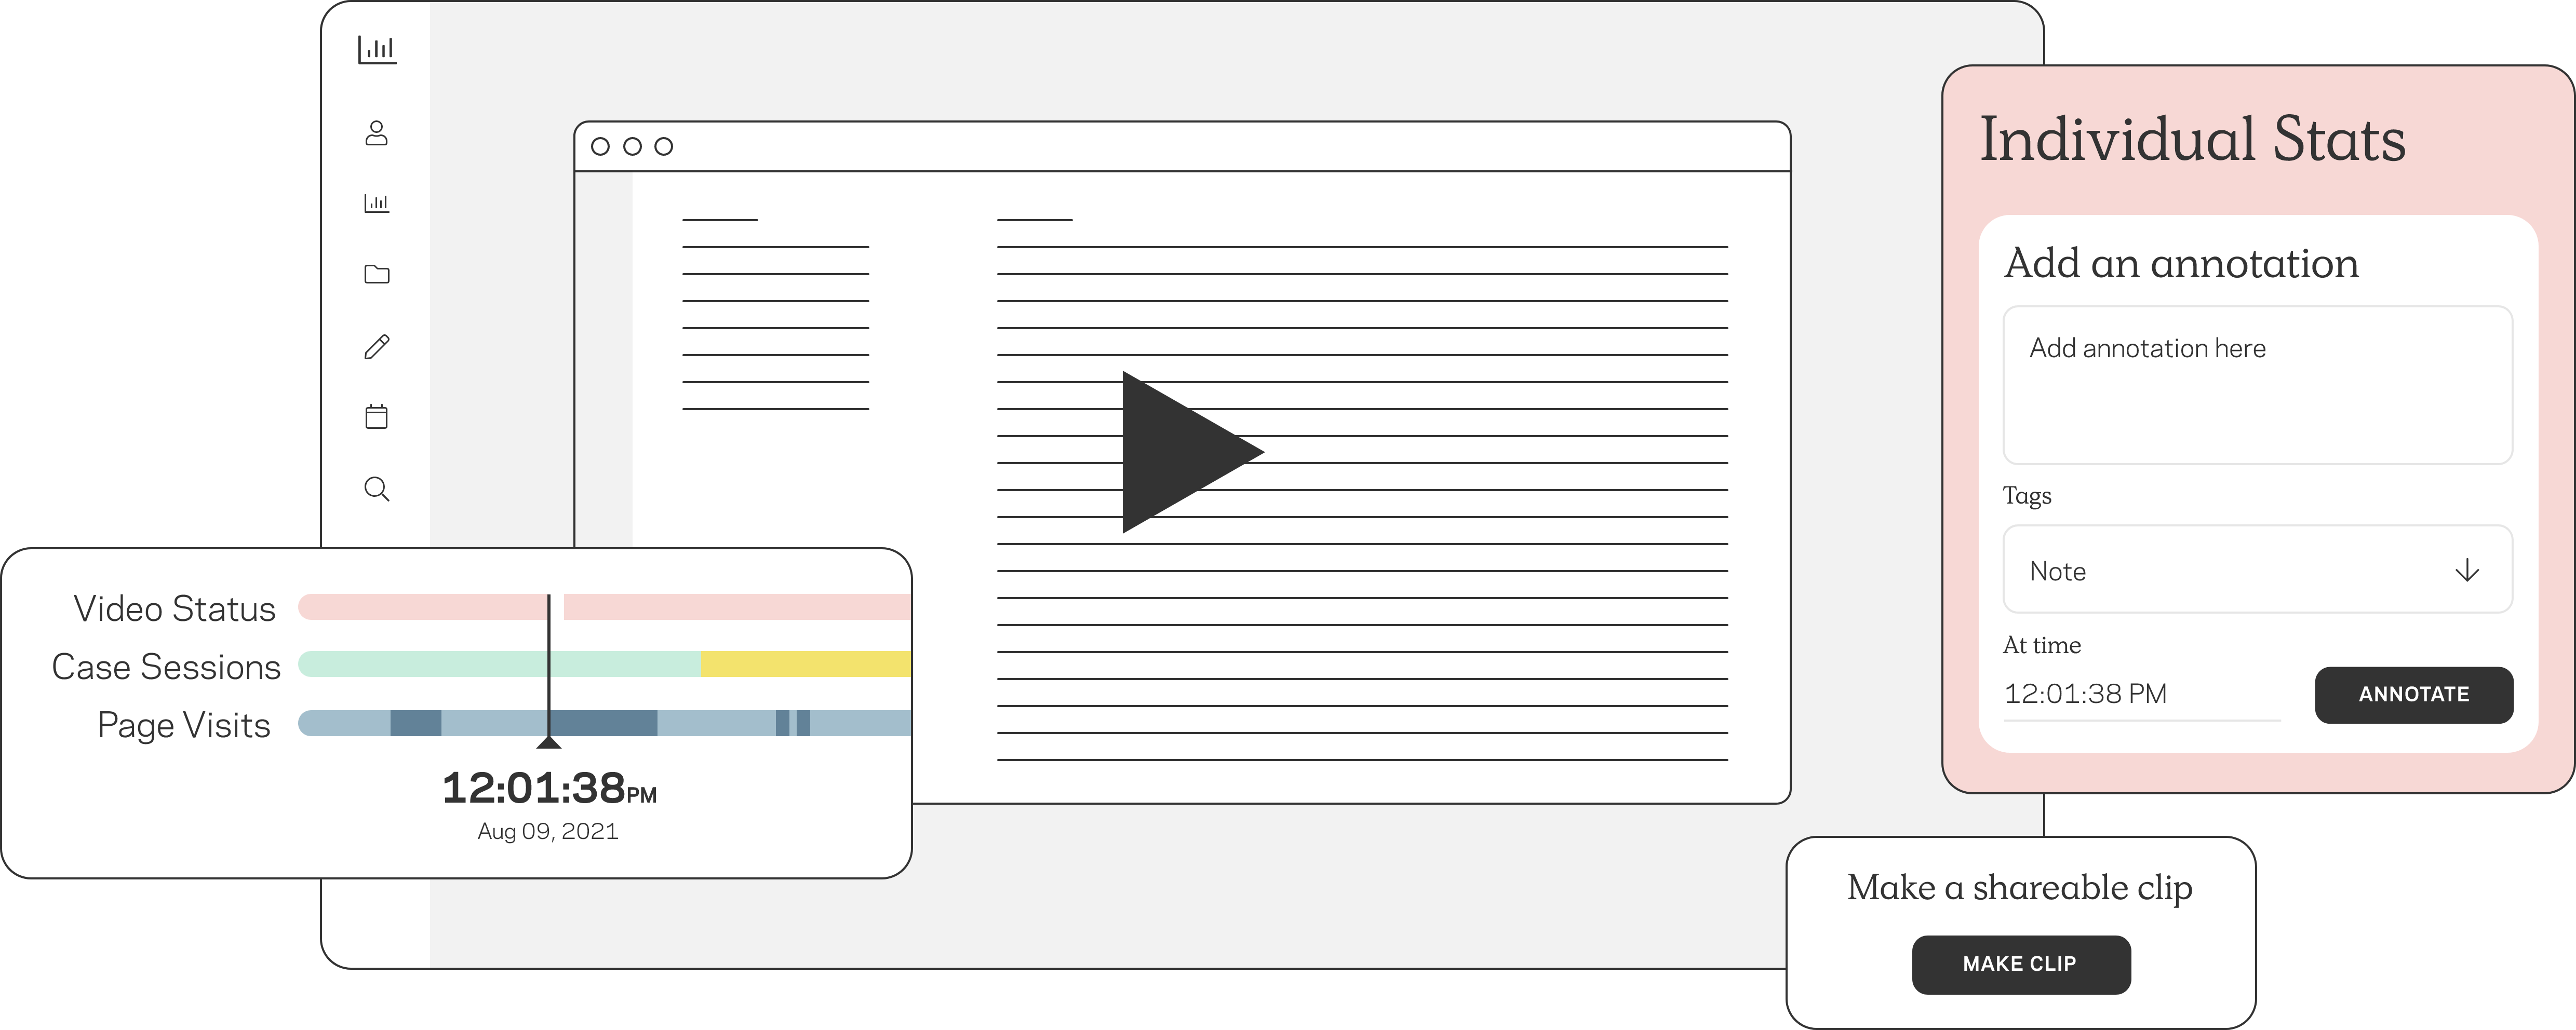 Video functionality shows the ability to make clips and annotate